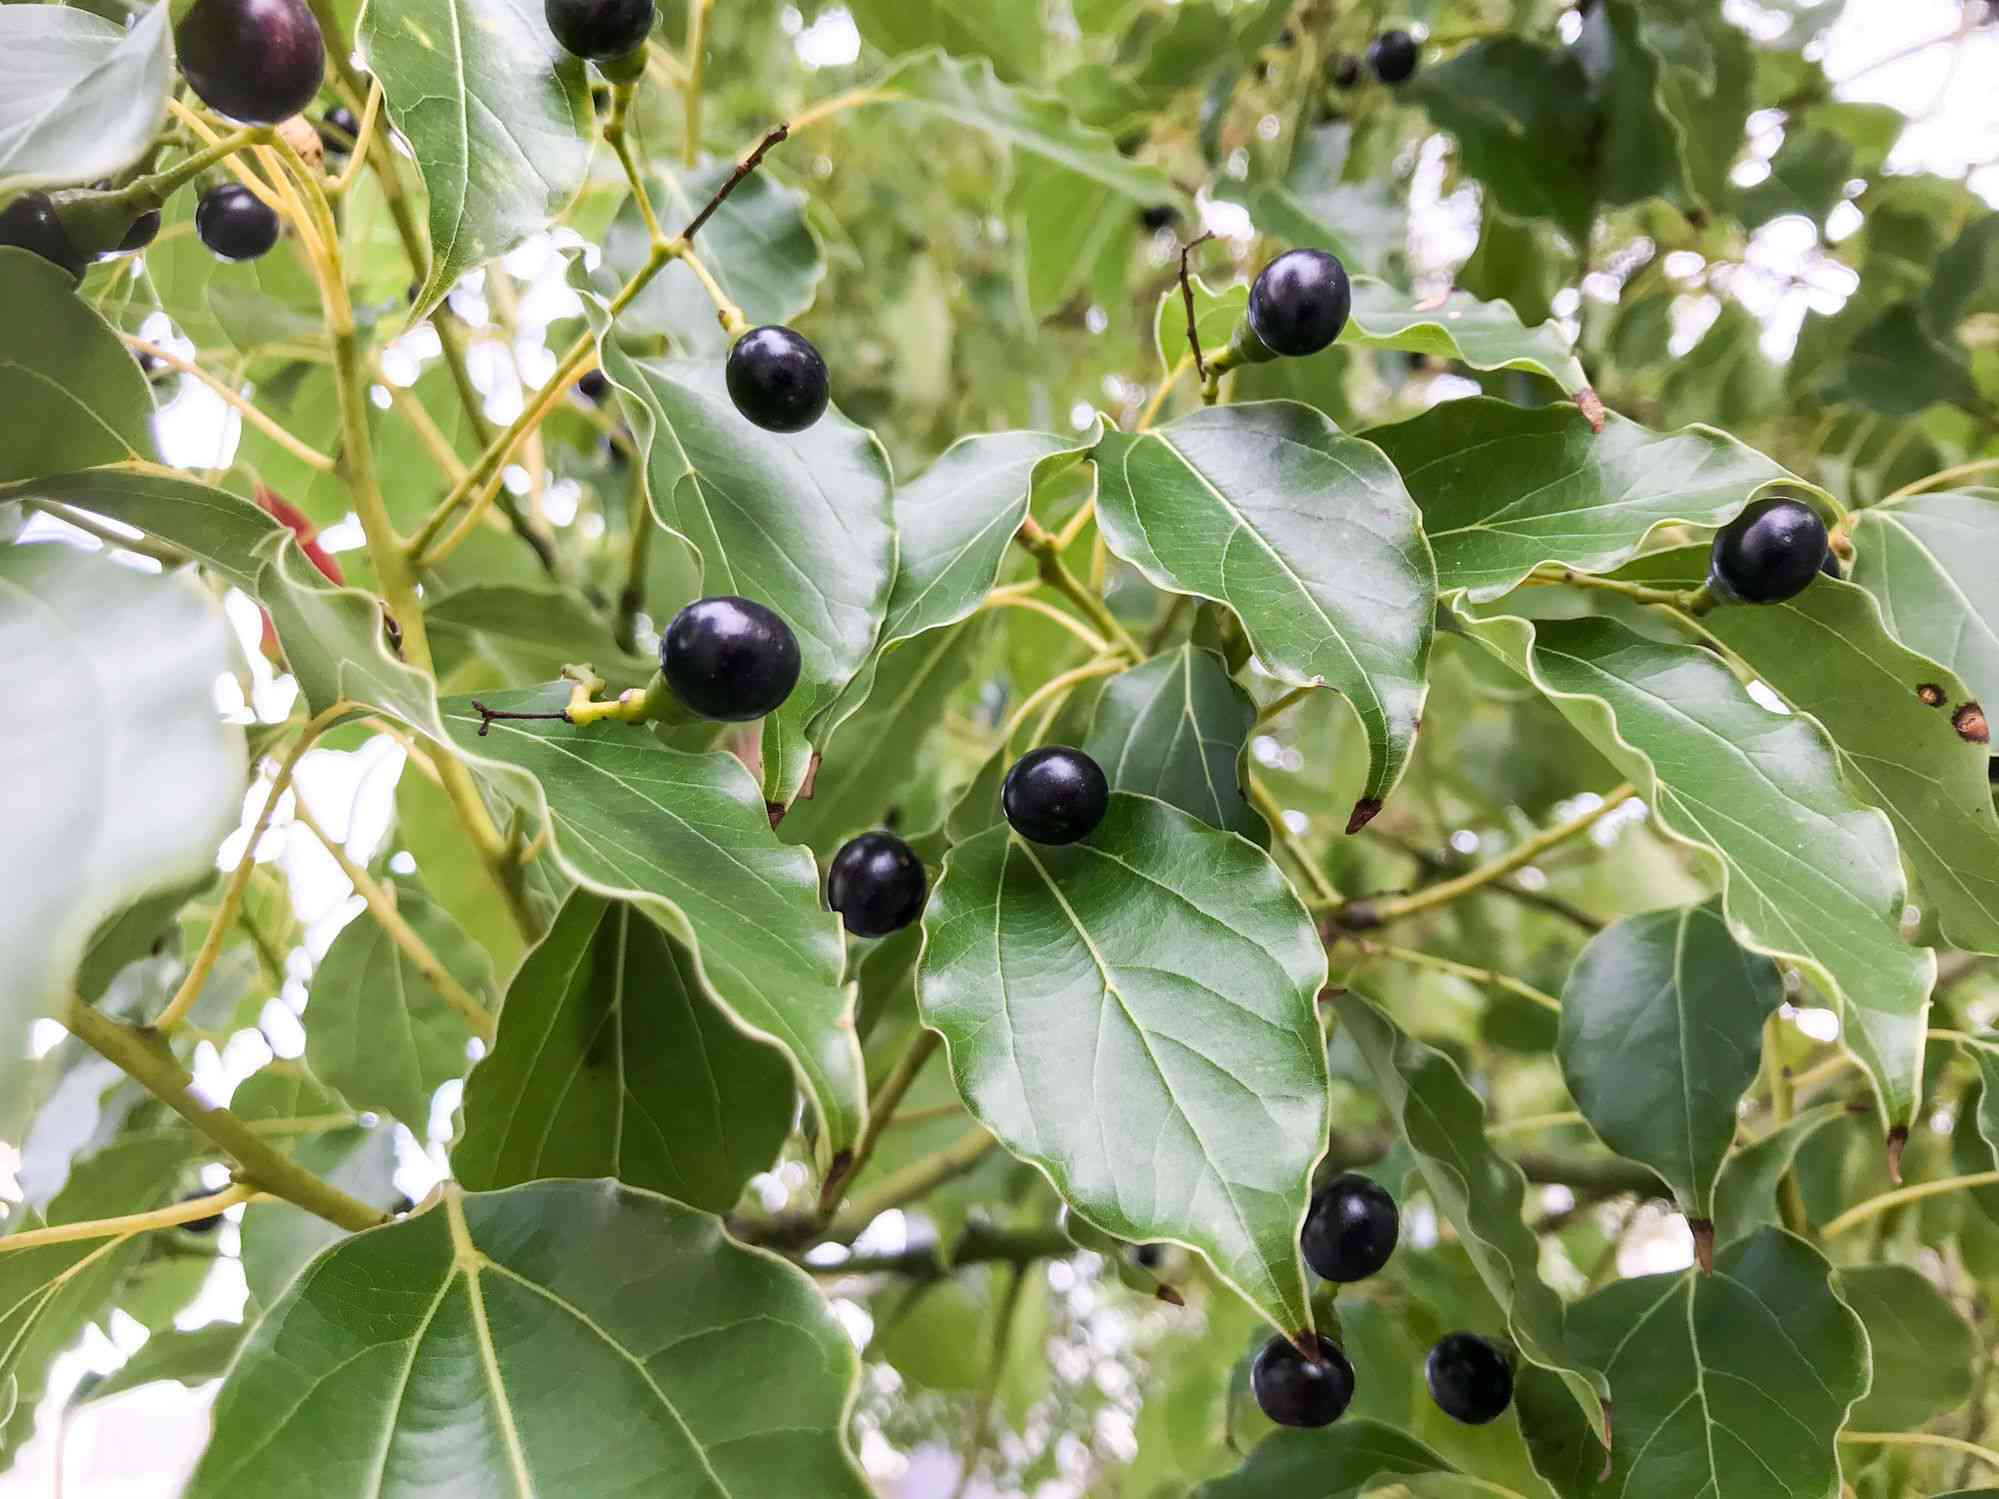 Closeup of the leaves and berries of the camphor tree